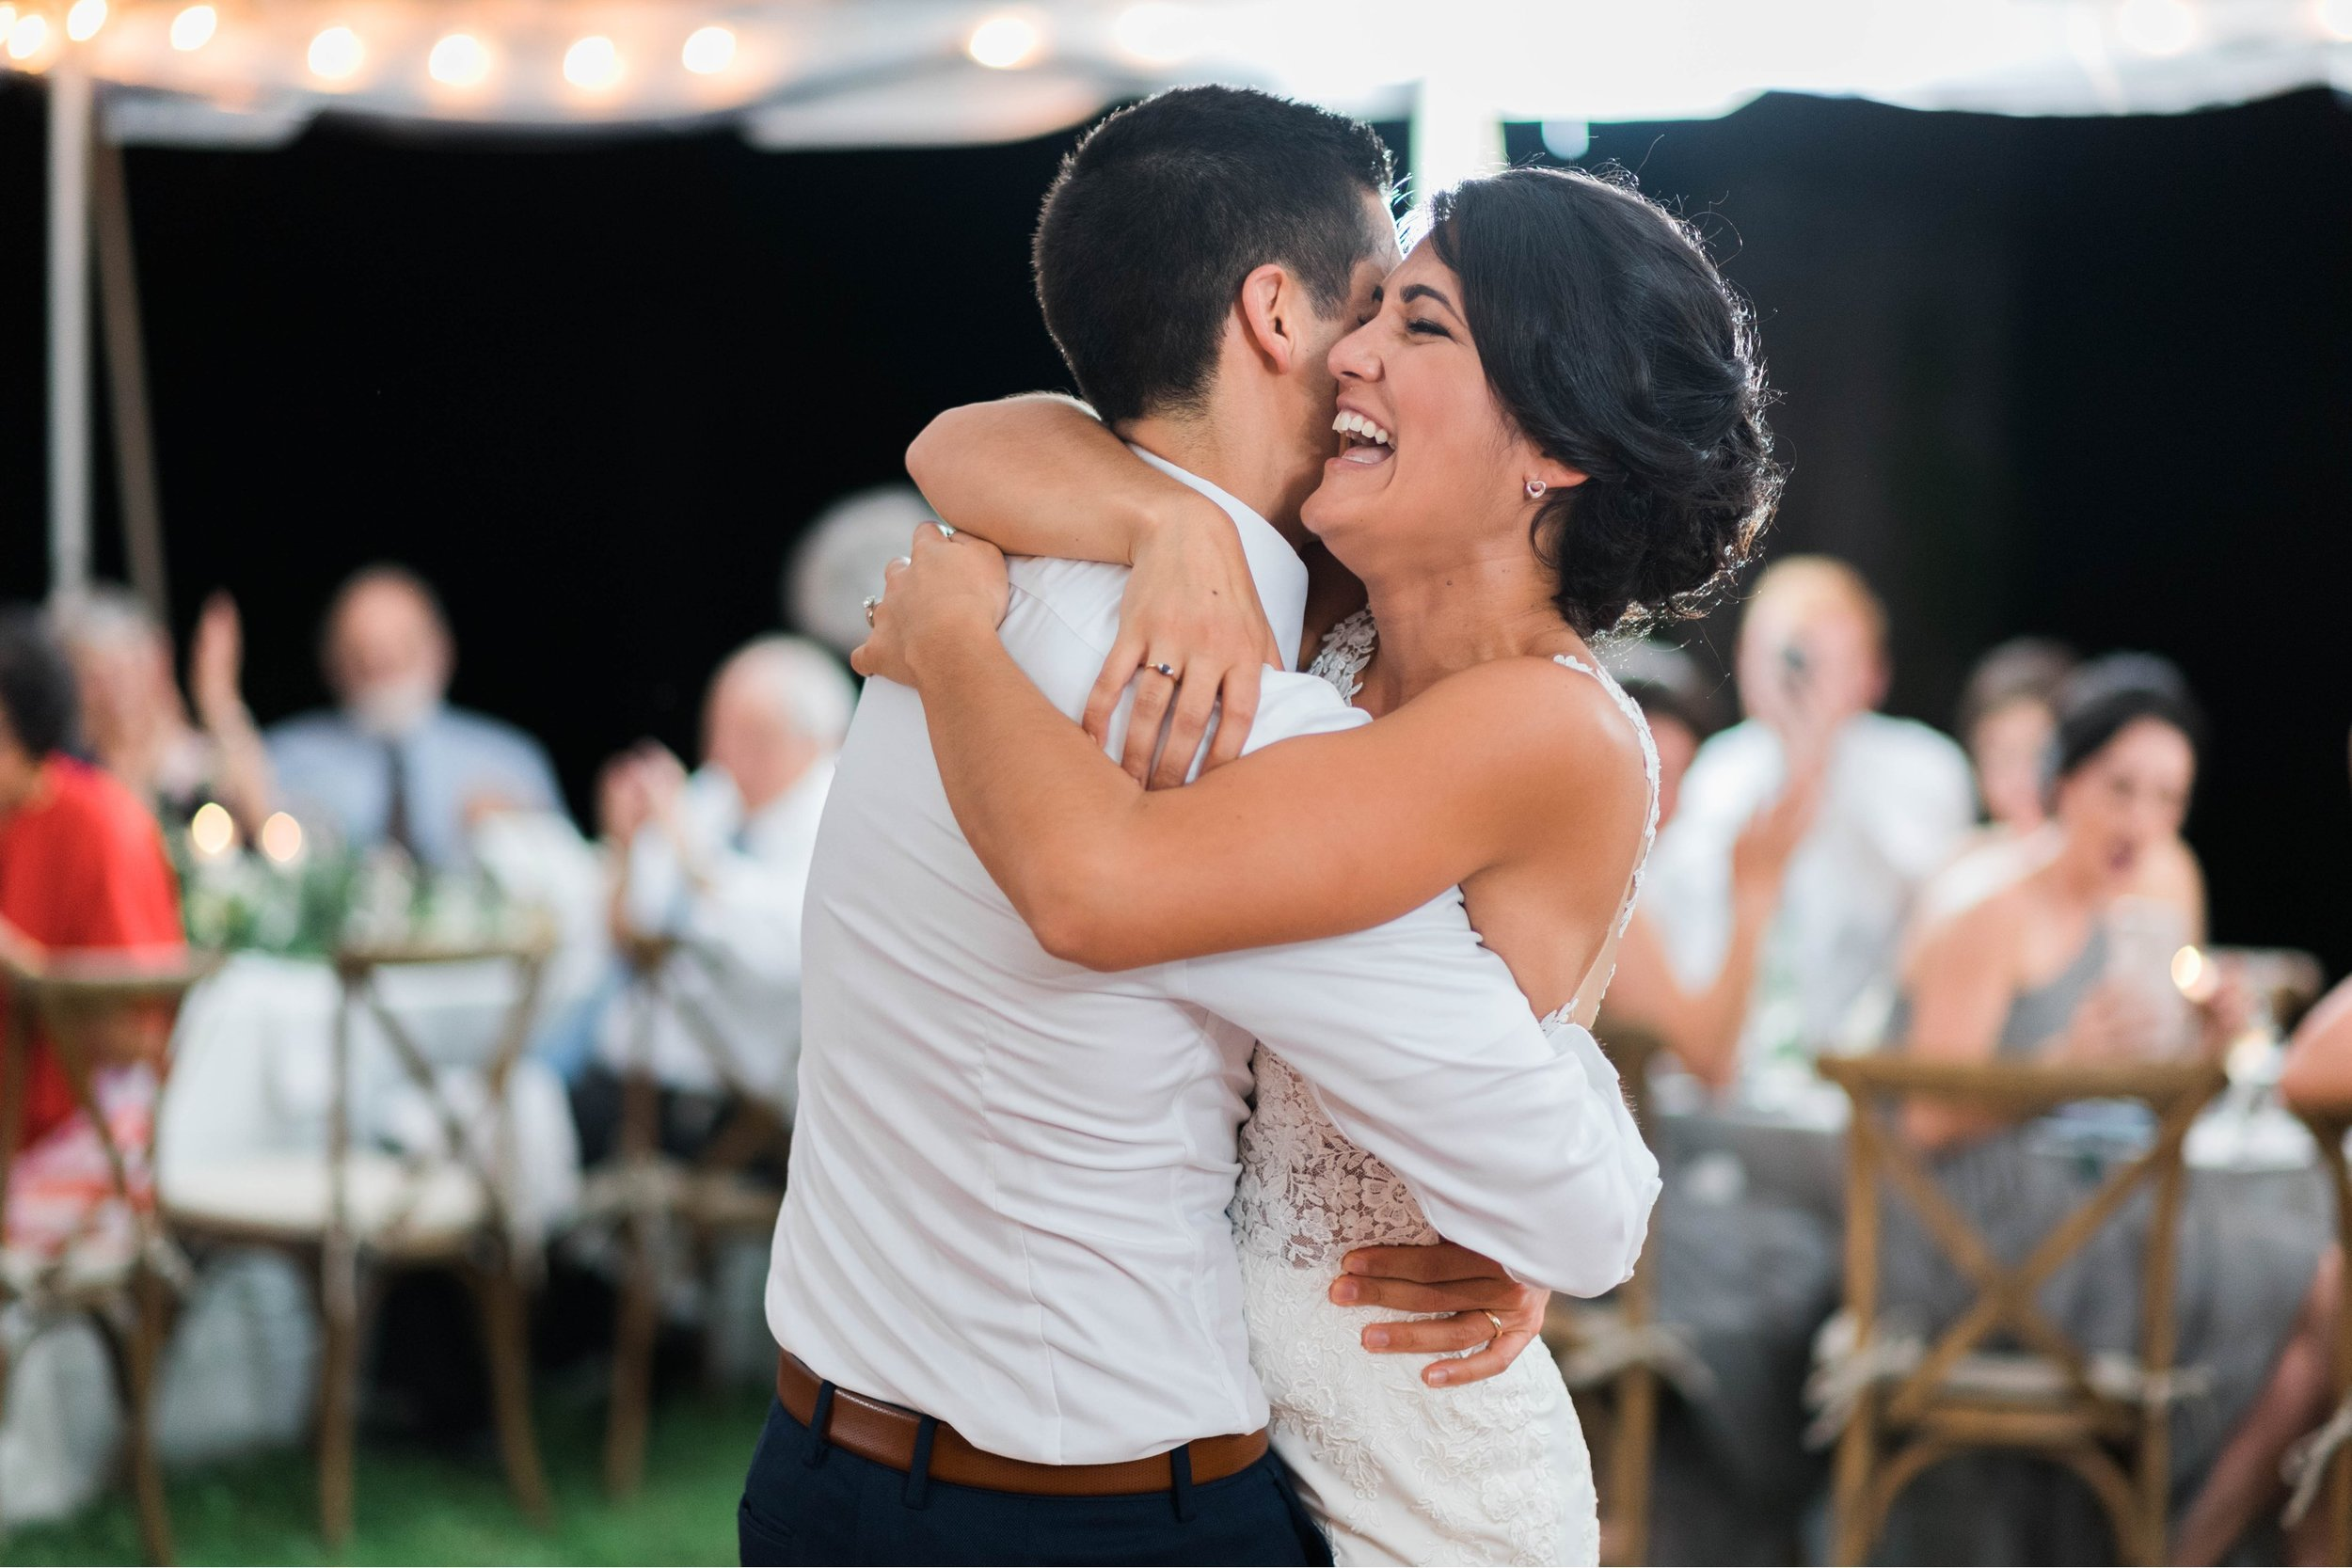 Williamsburgvawedding_backyardwedding_virginiaweddingphotographer_lynchburgweddingphotographer_PaulAliya 38.jpg